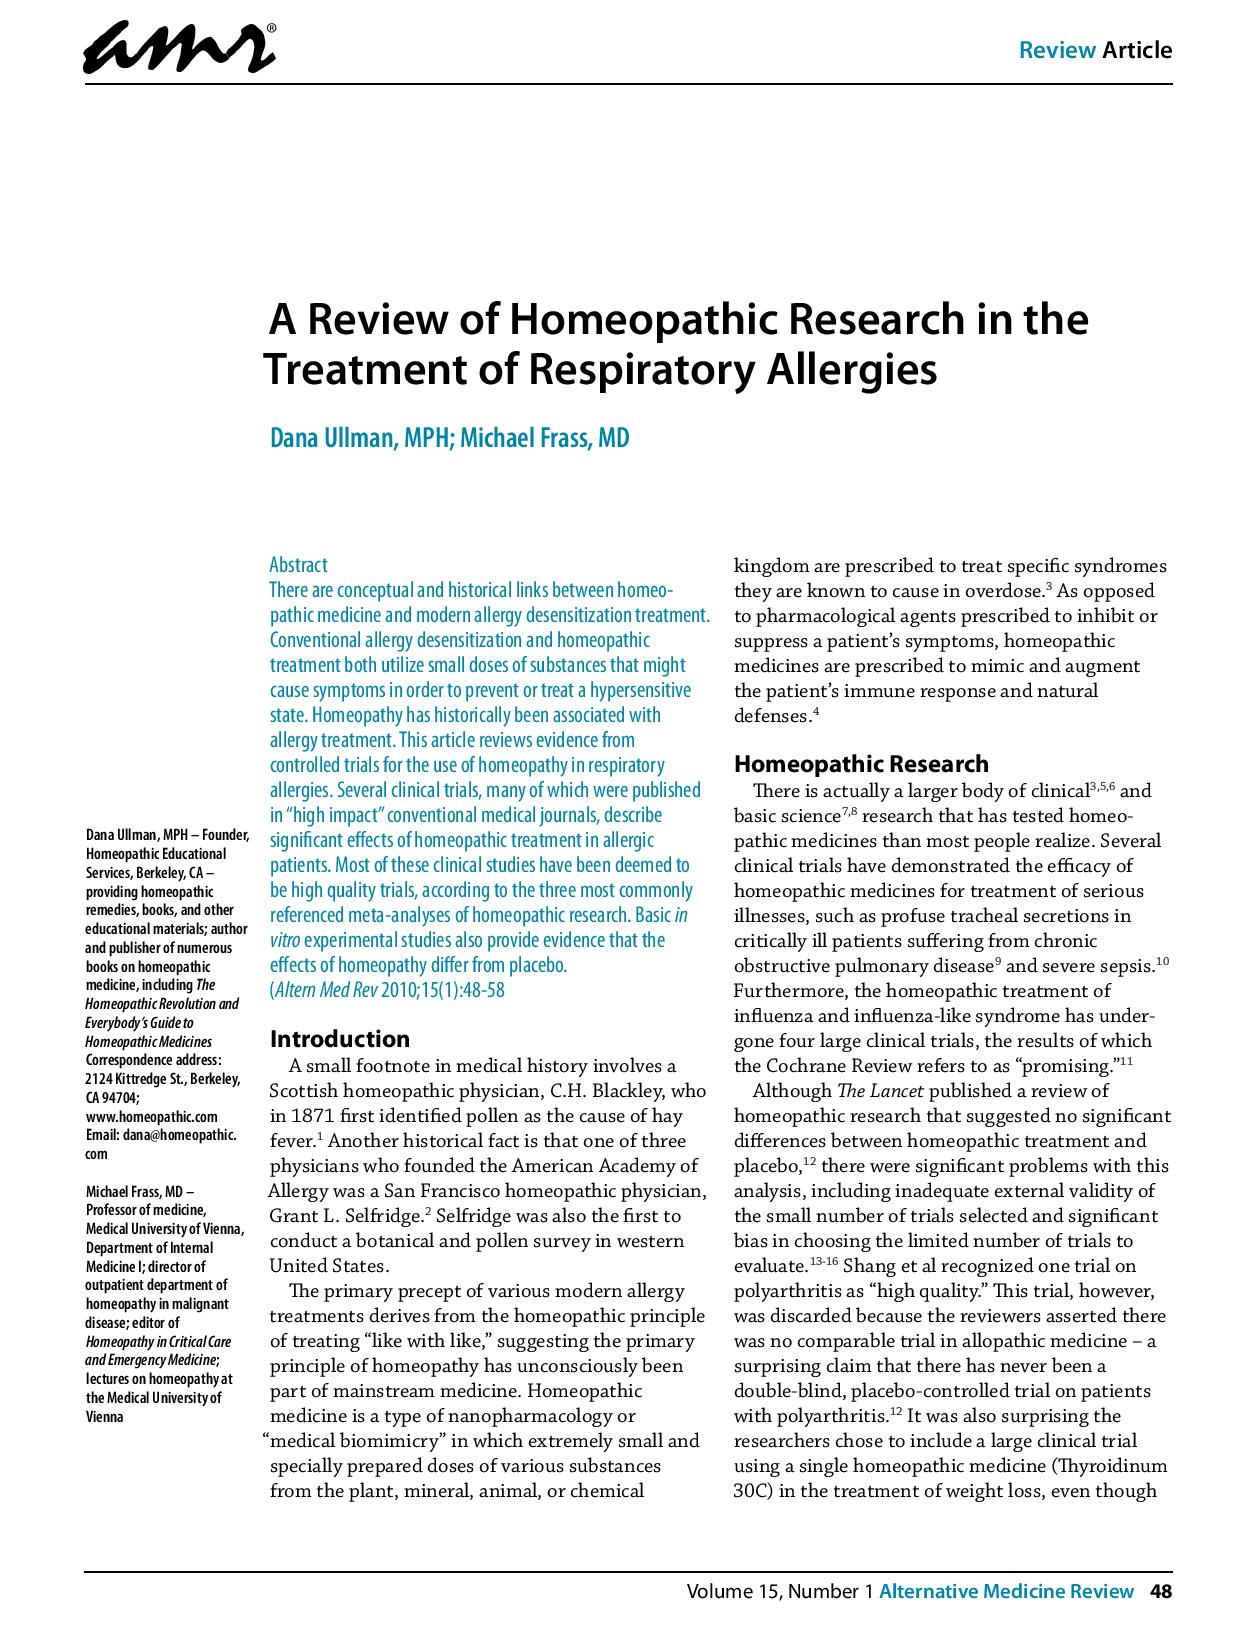 A review of homeopathic research in the treatment of respiratory allergies 2010 page 001